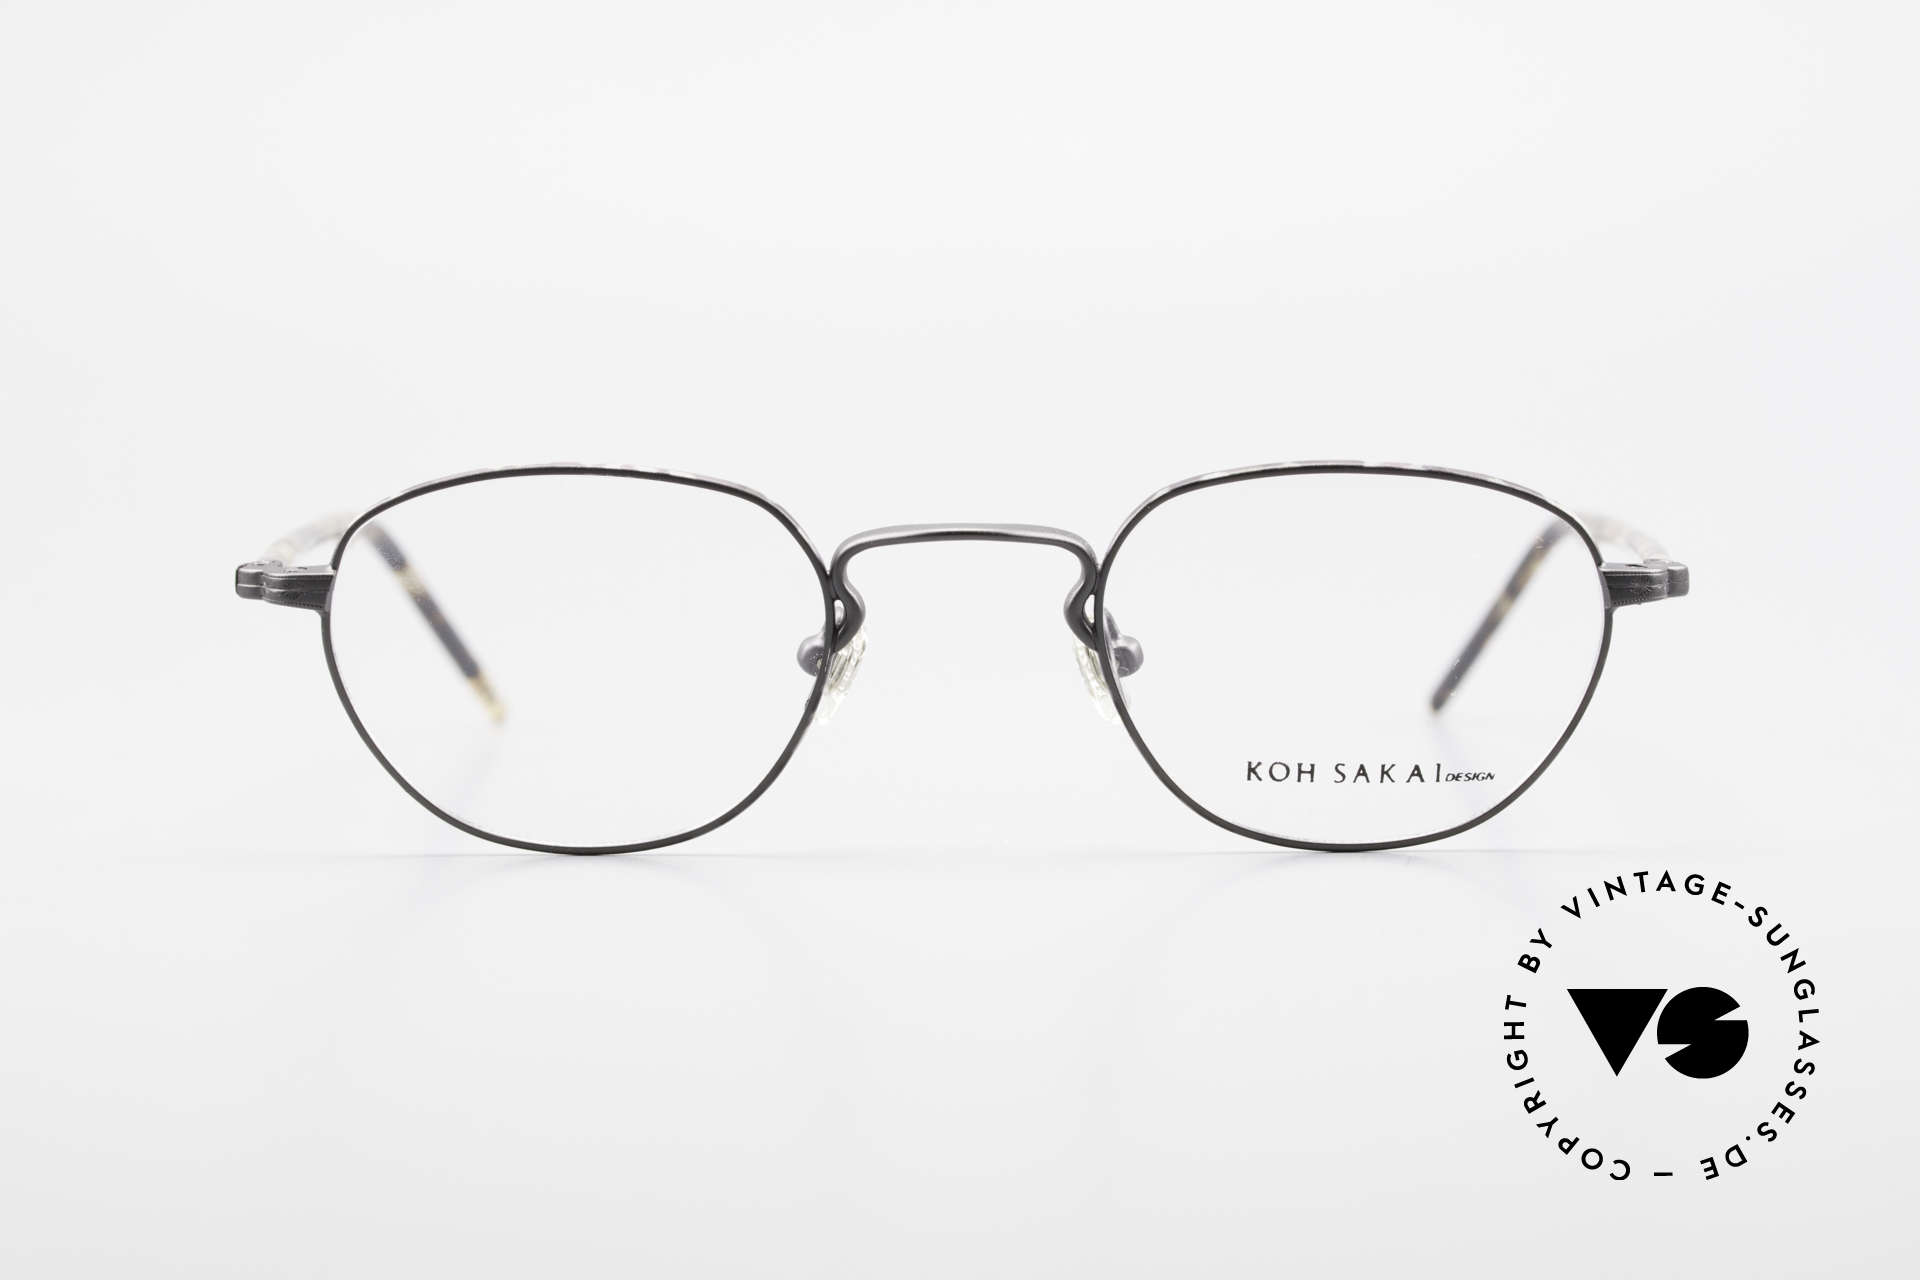 Koh Sakai KS9408 Small Eyeglasses With Clip On, Size: small, Made for Men and Women